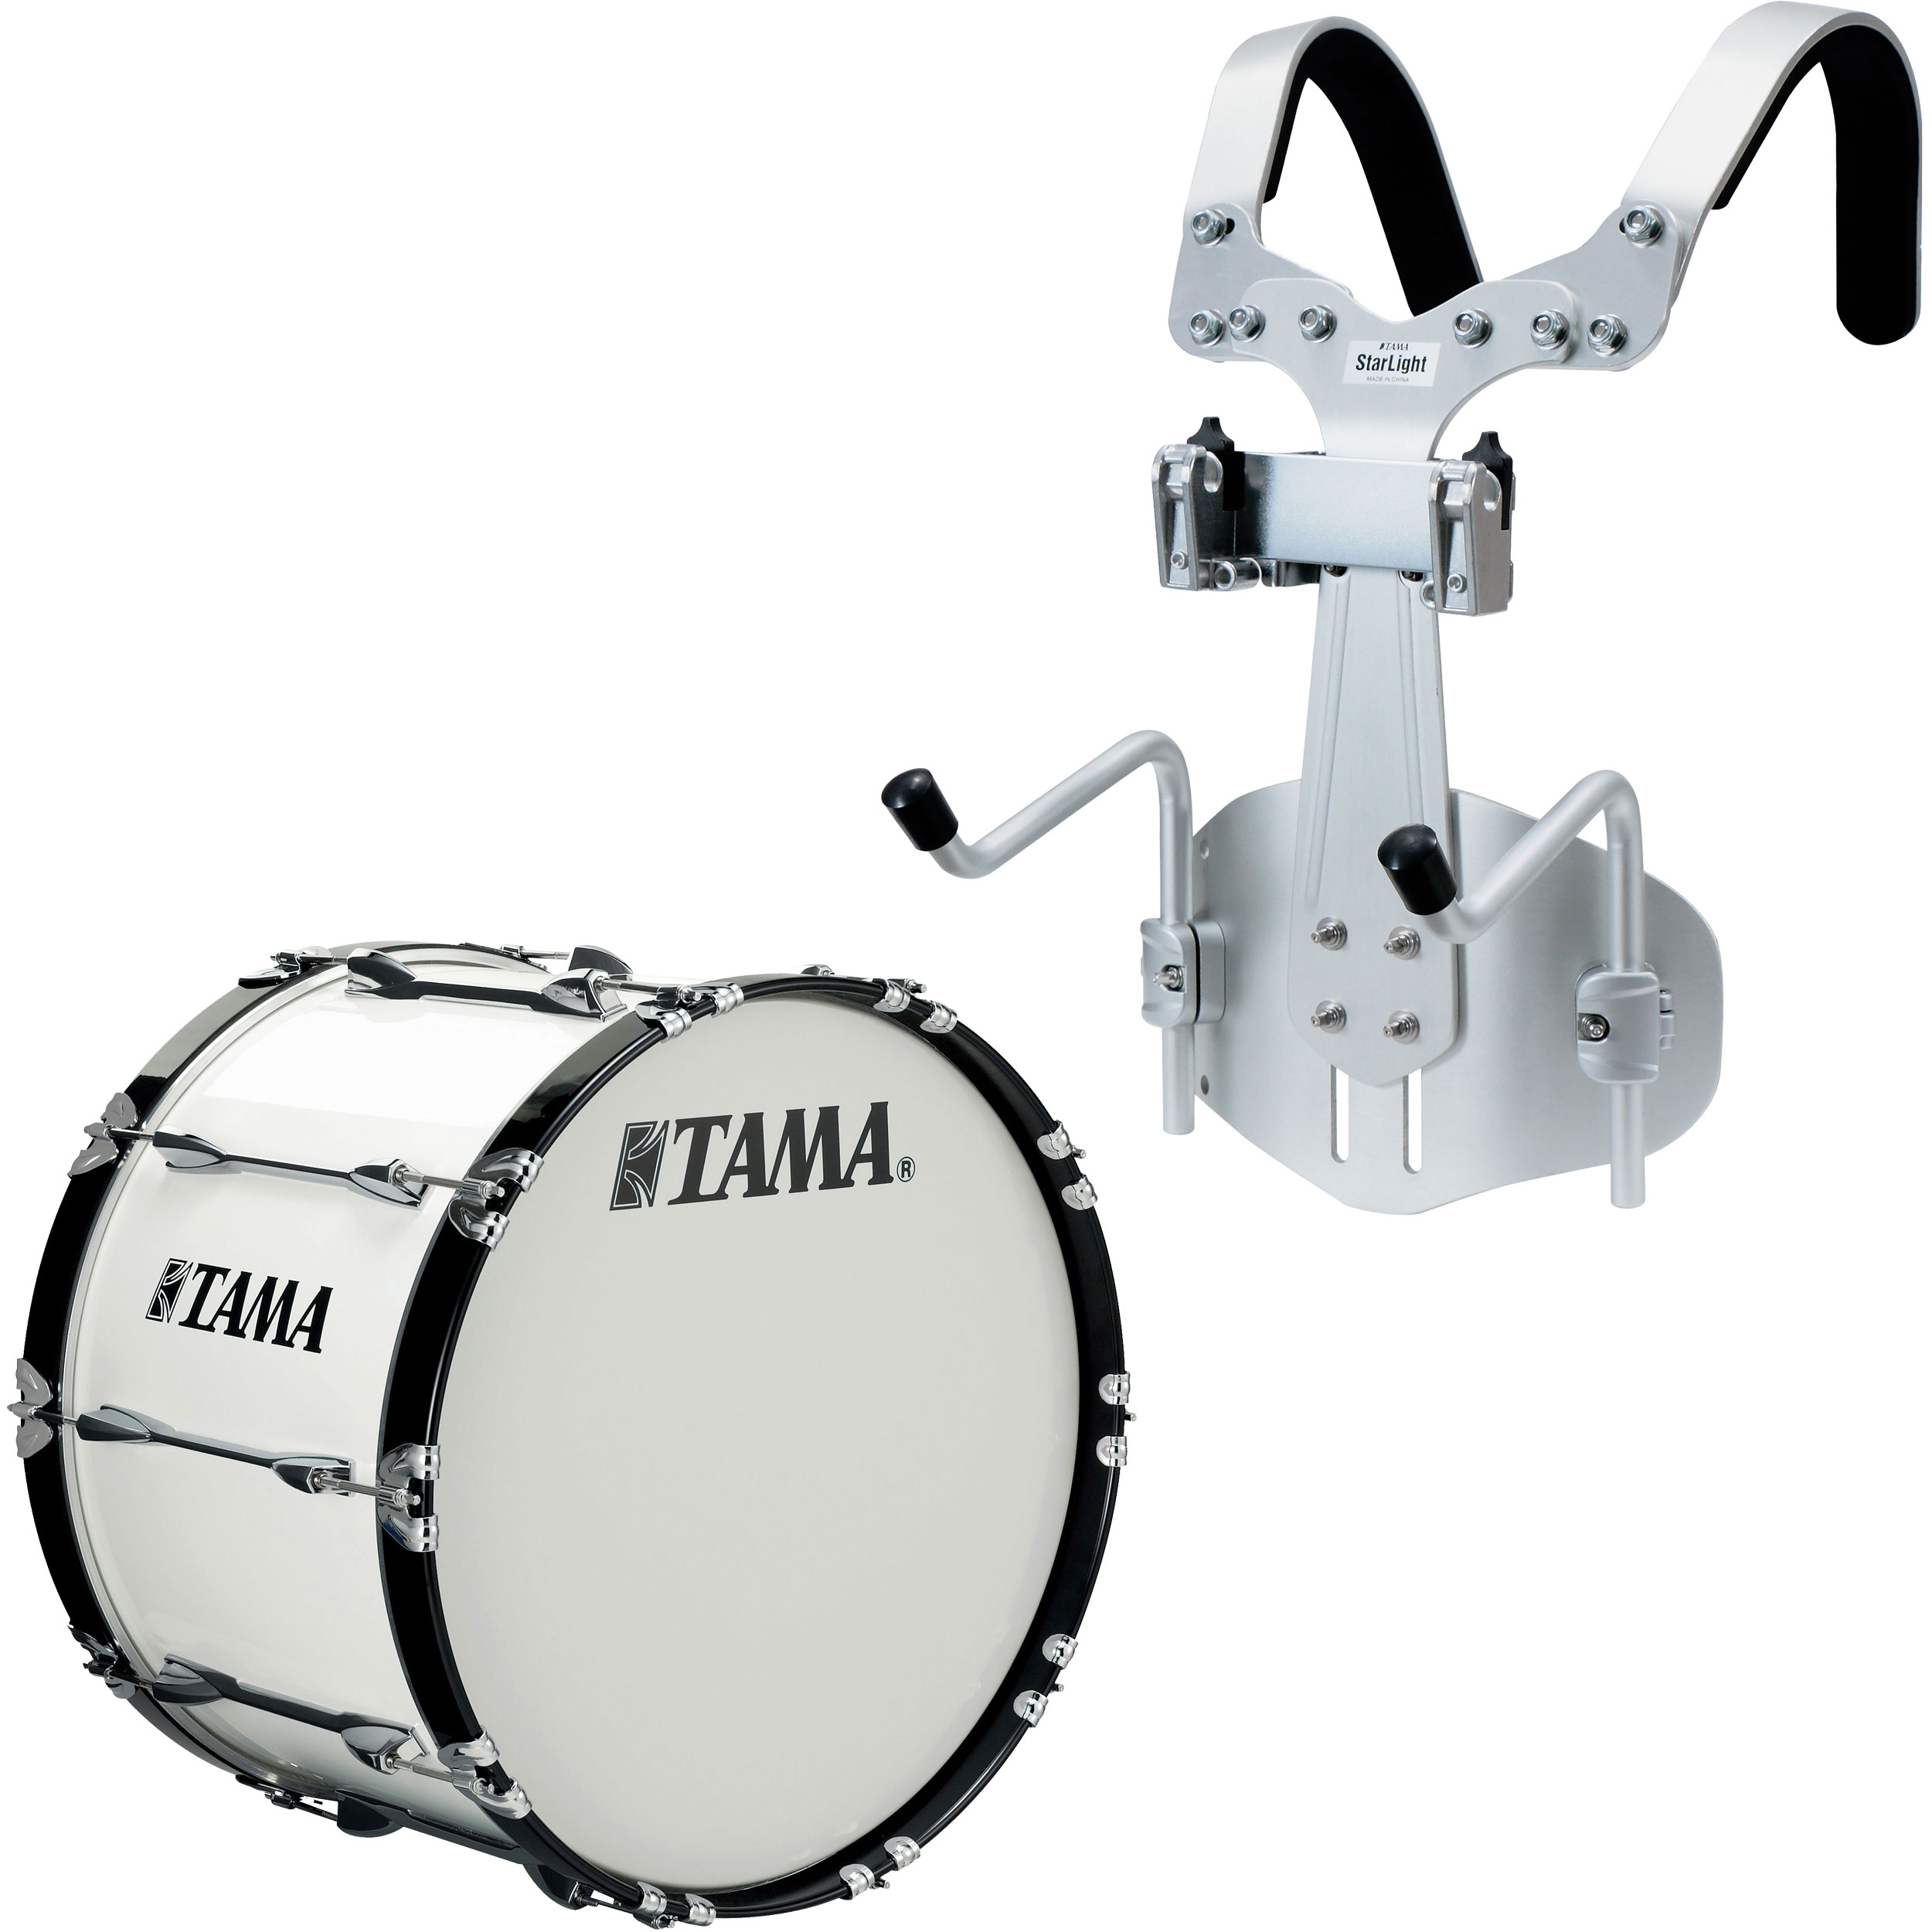 "Tama 16"" StarLight Marching Bass Drum in Sugar White Wrap with Carrier"